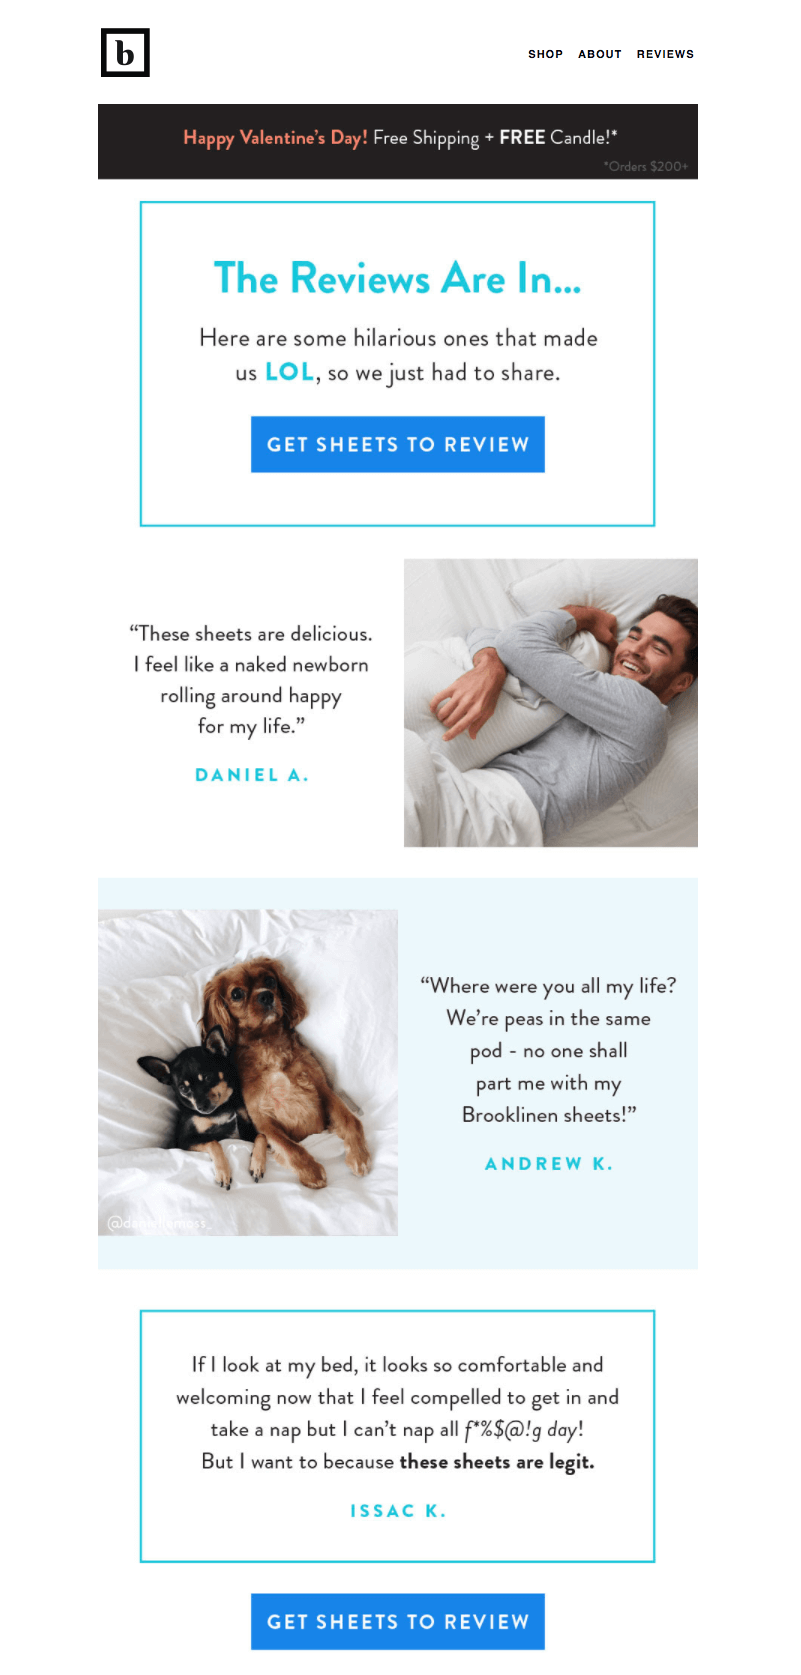 Brooklinen - user-generated content in email